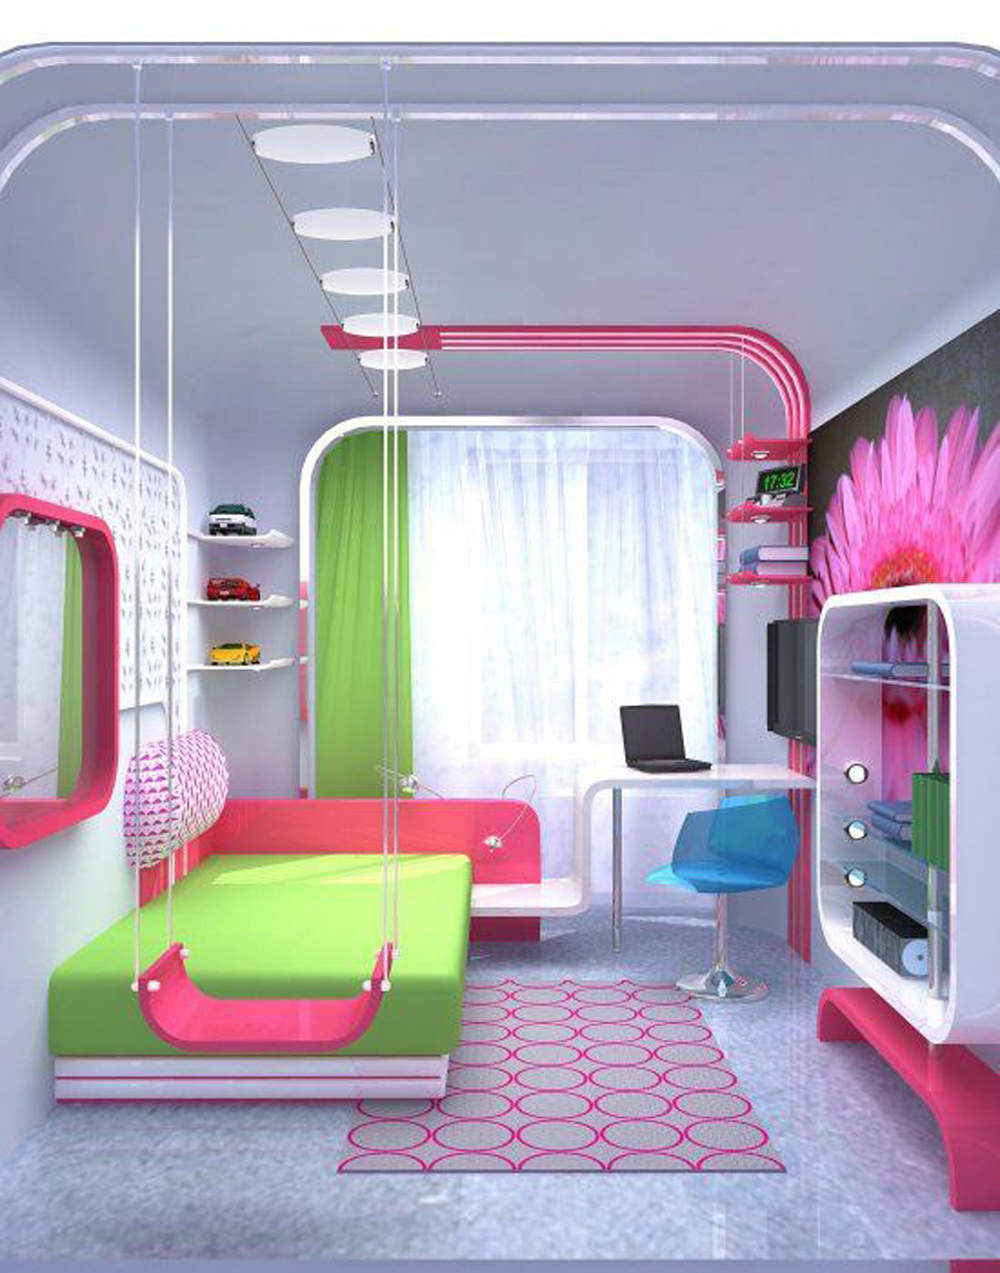 Stylish colorful bedrooms for girls allarchitecturedesigns for Ideas para decorar un cuarto